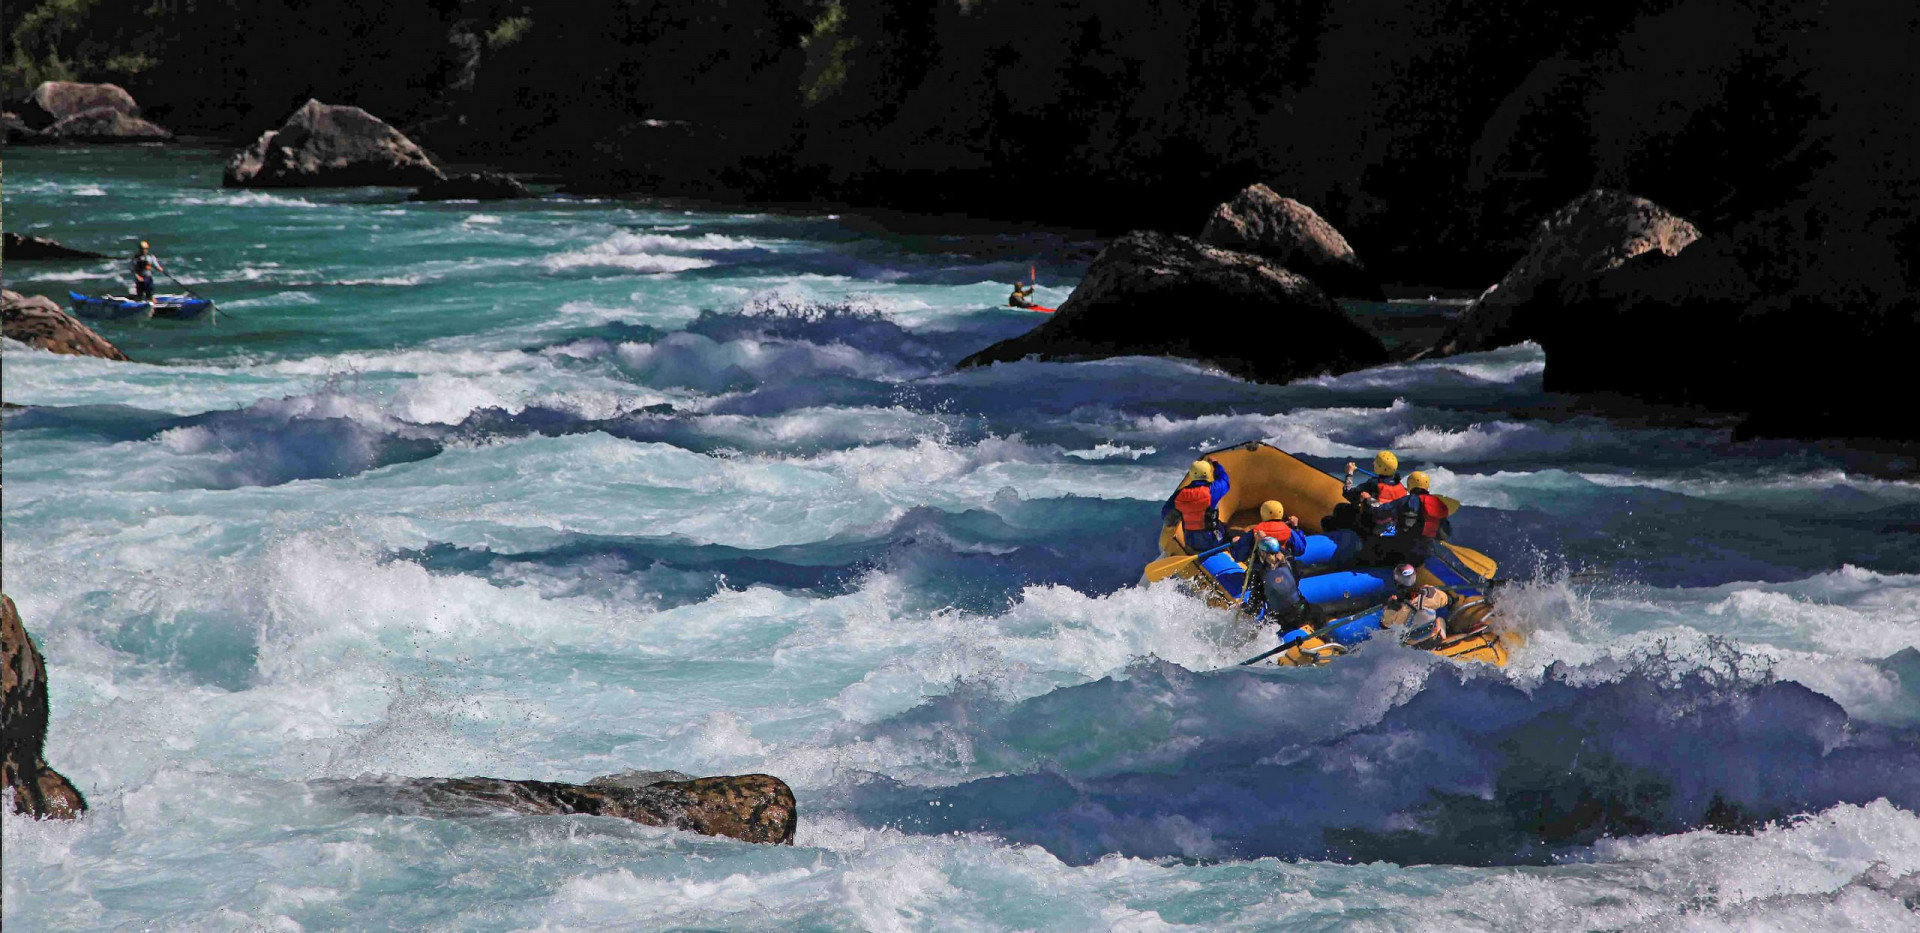 High Adventure Rafting - Rafting in Chile -